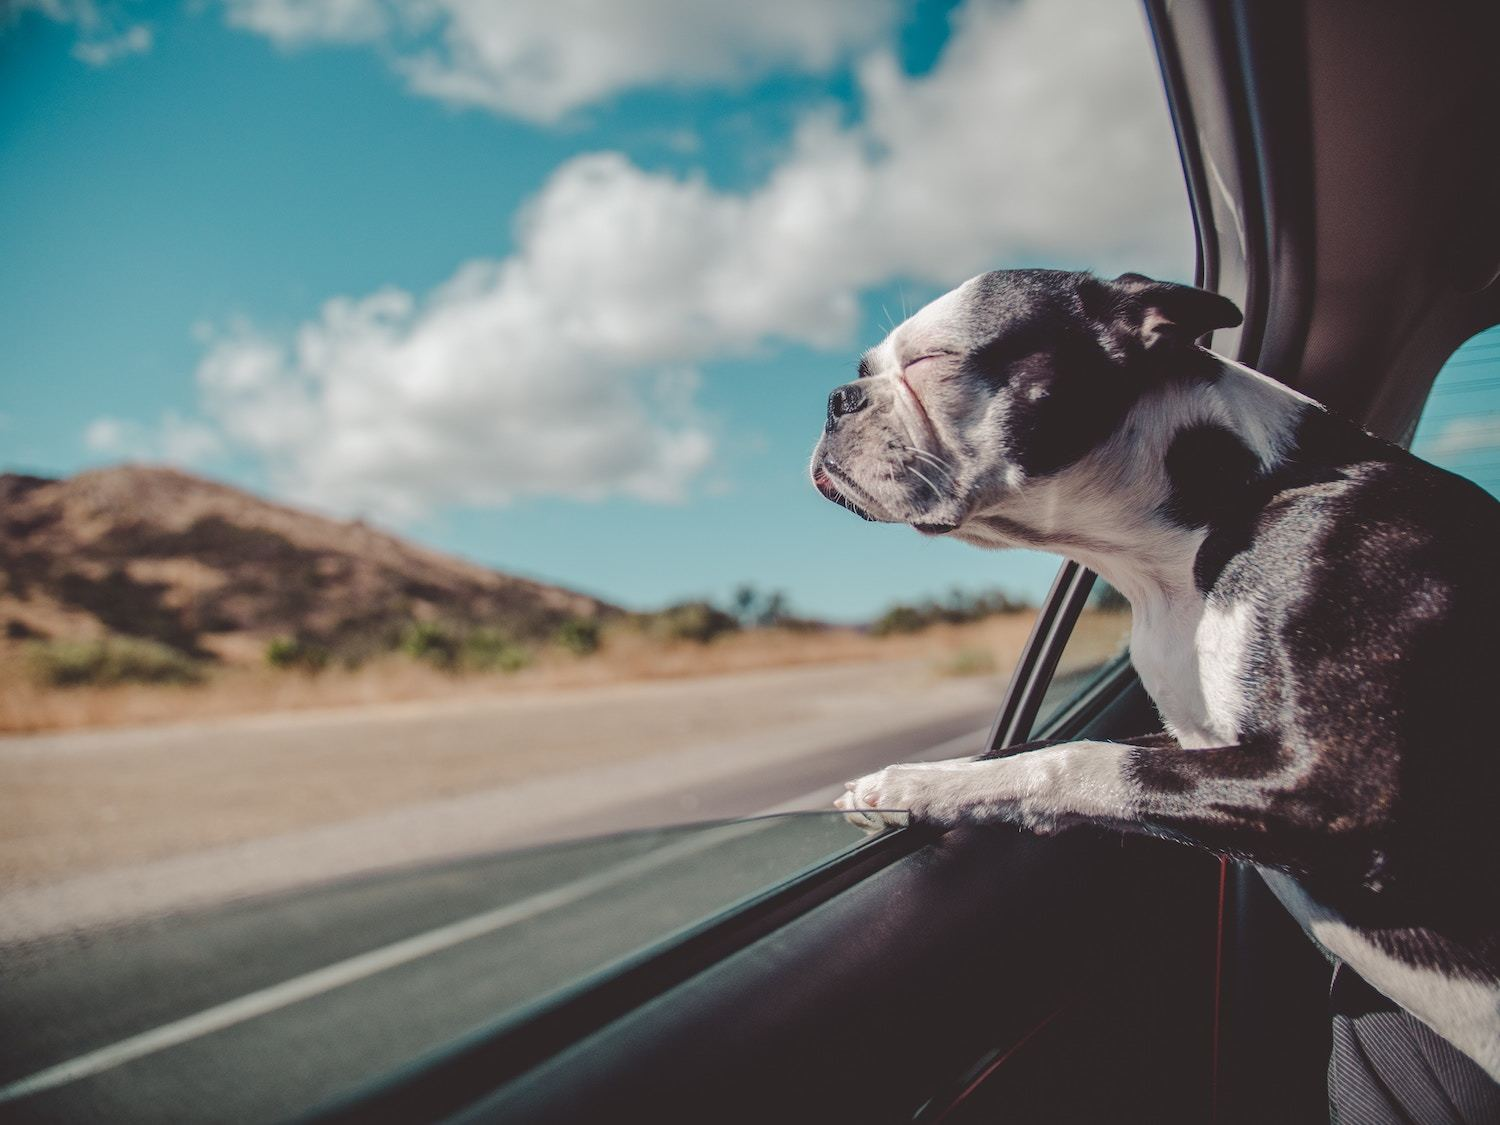 a dog sticks his head out the car window